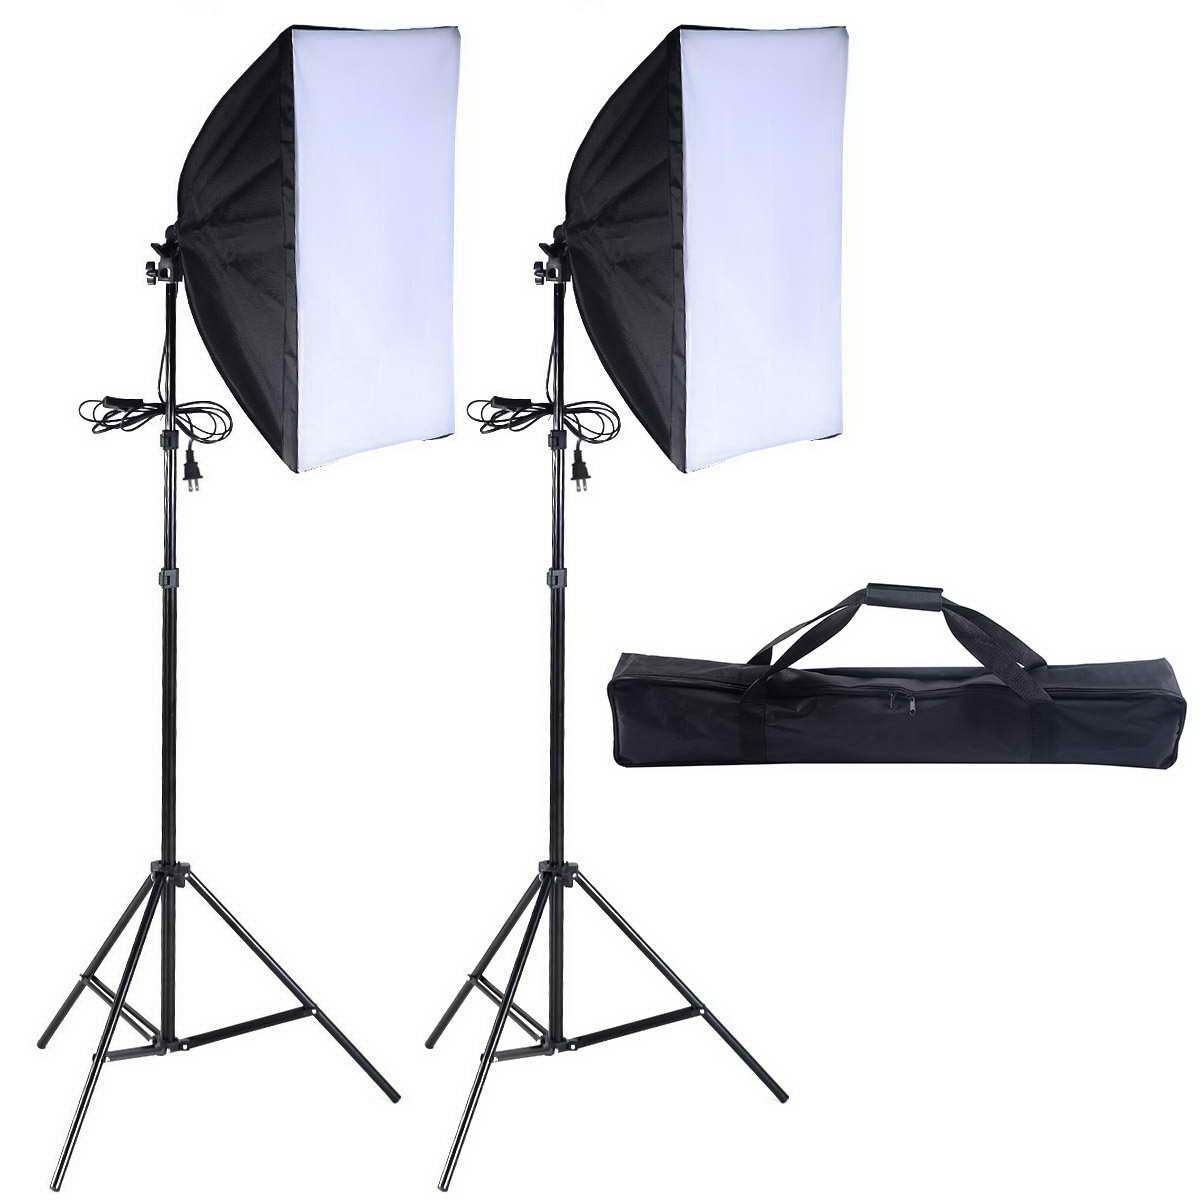 royalty photography lighting equipment image stock photo white on studio isolated